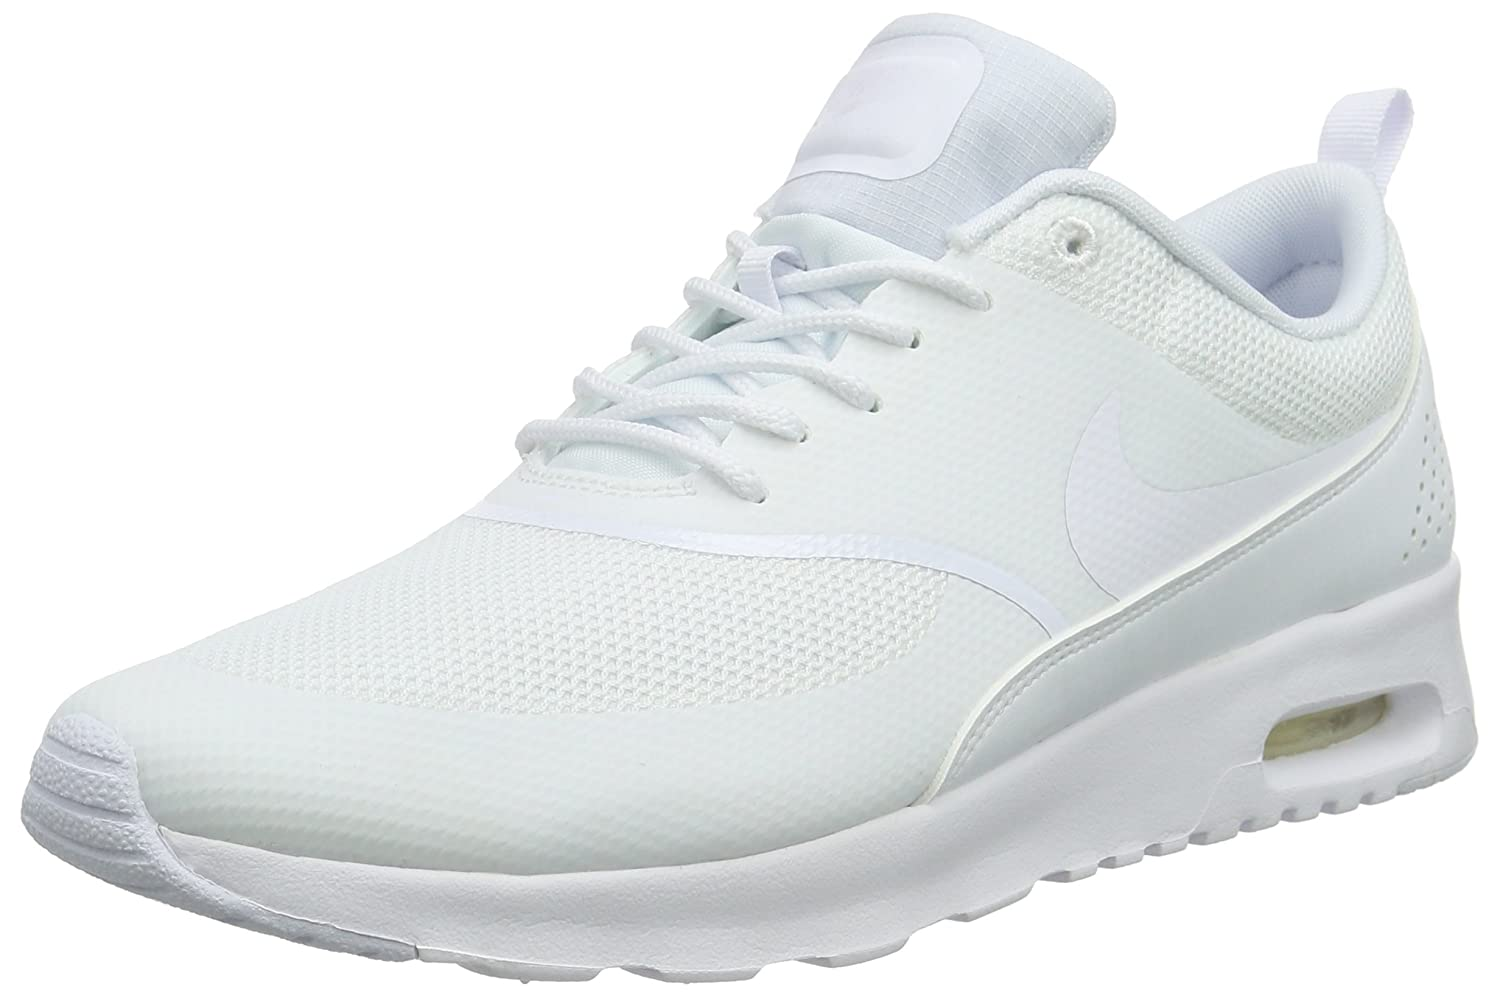 47c2e1dd3f Nike Air Max Thea, Women Low-Top Sneakers, White (White/White), 8.5 UK (43  EU): Amazon.co.uk: Shoes & Bags